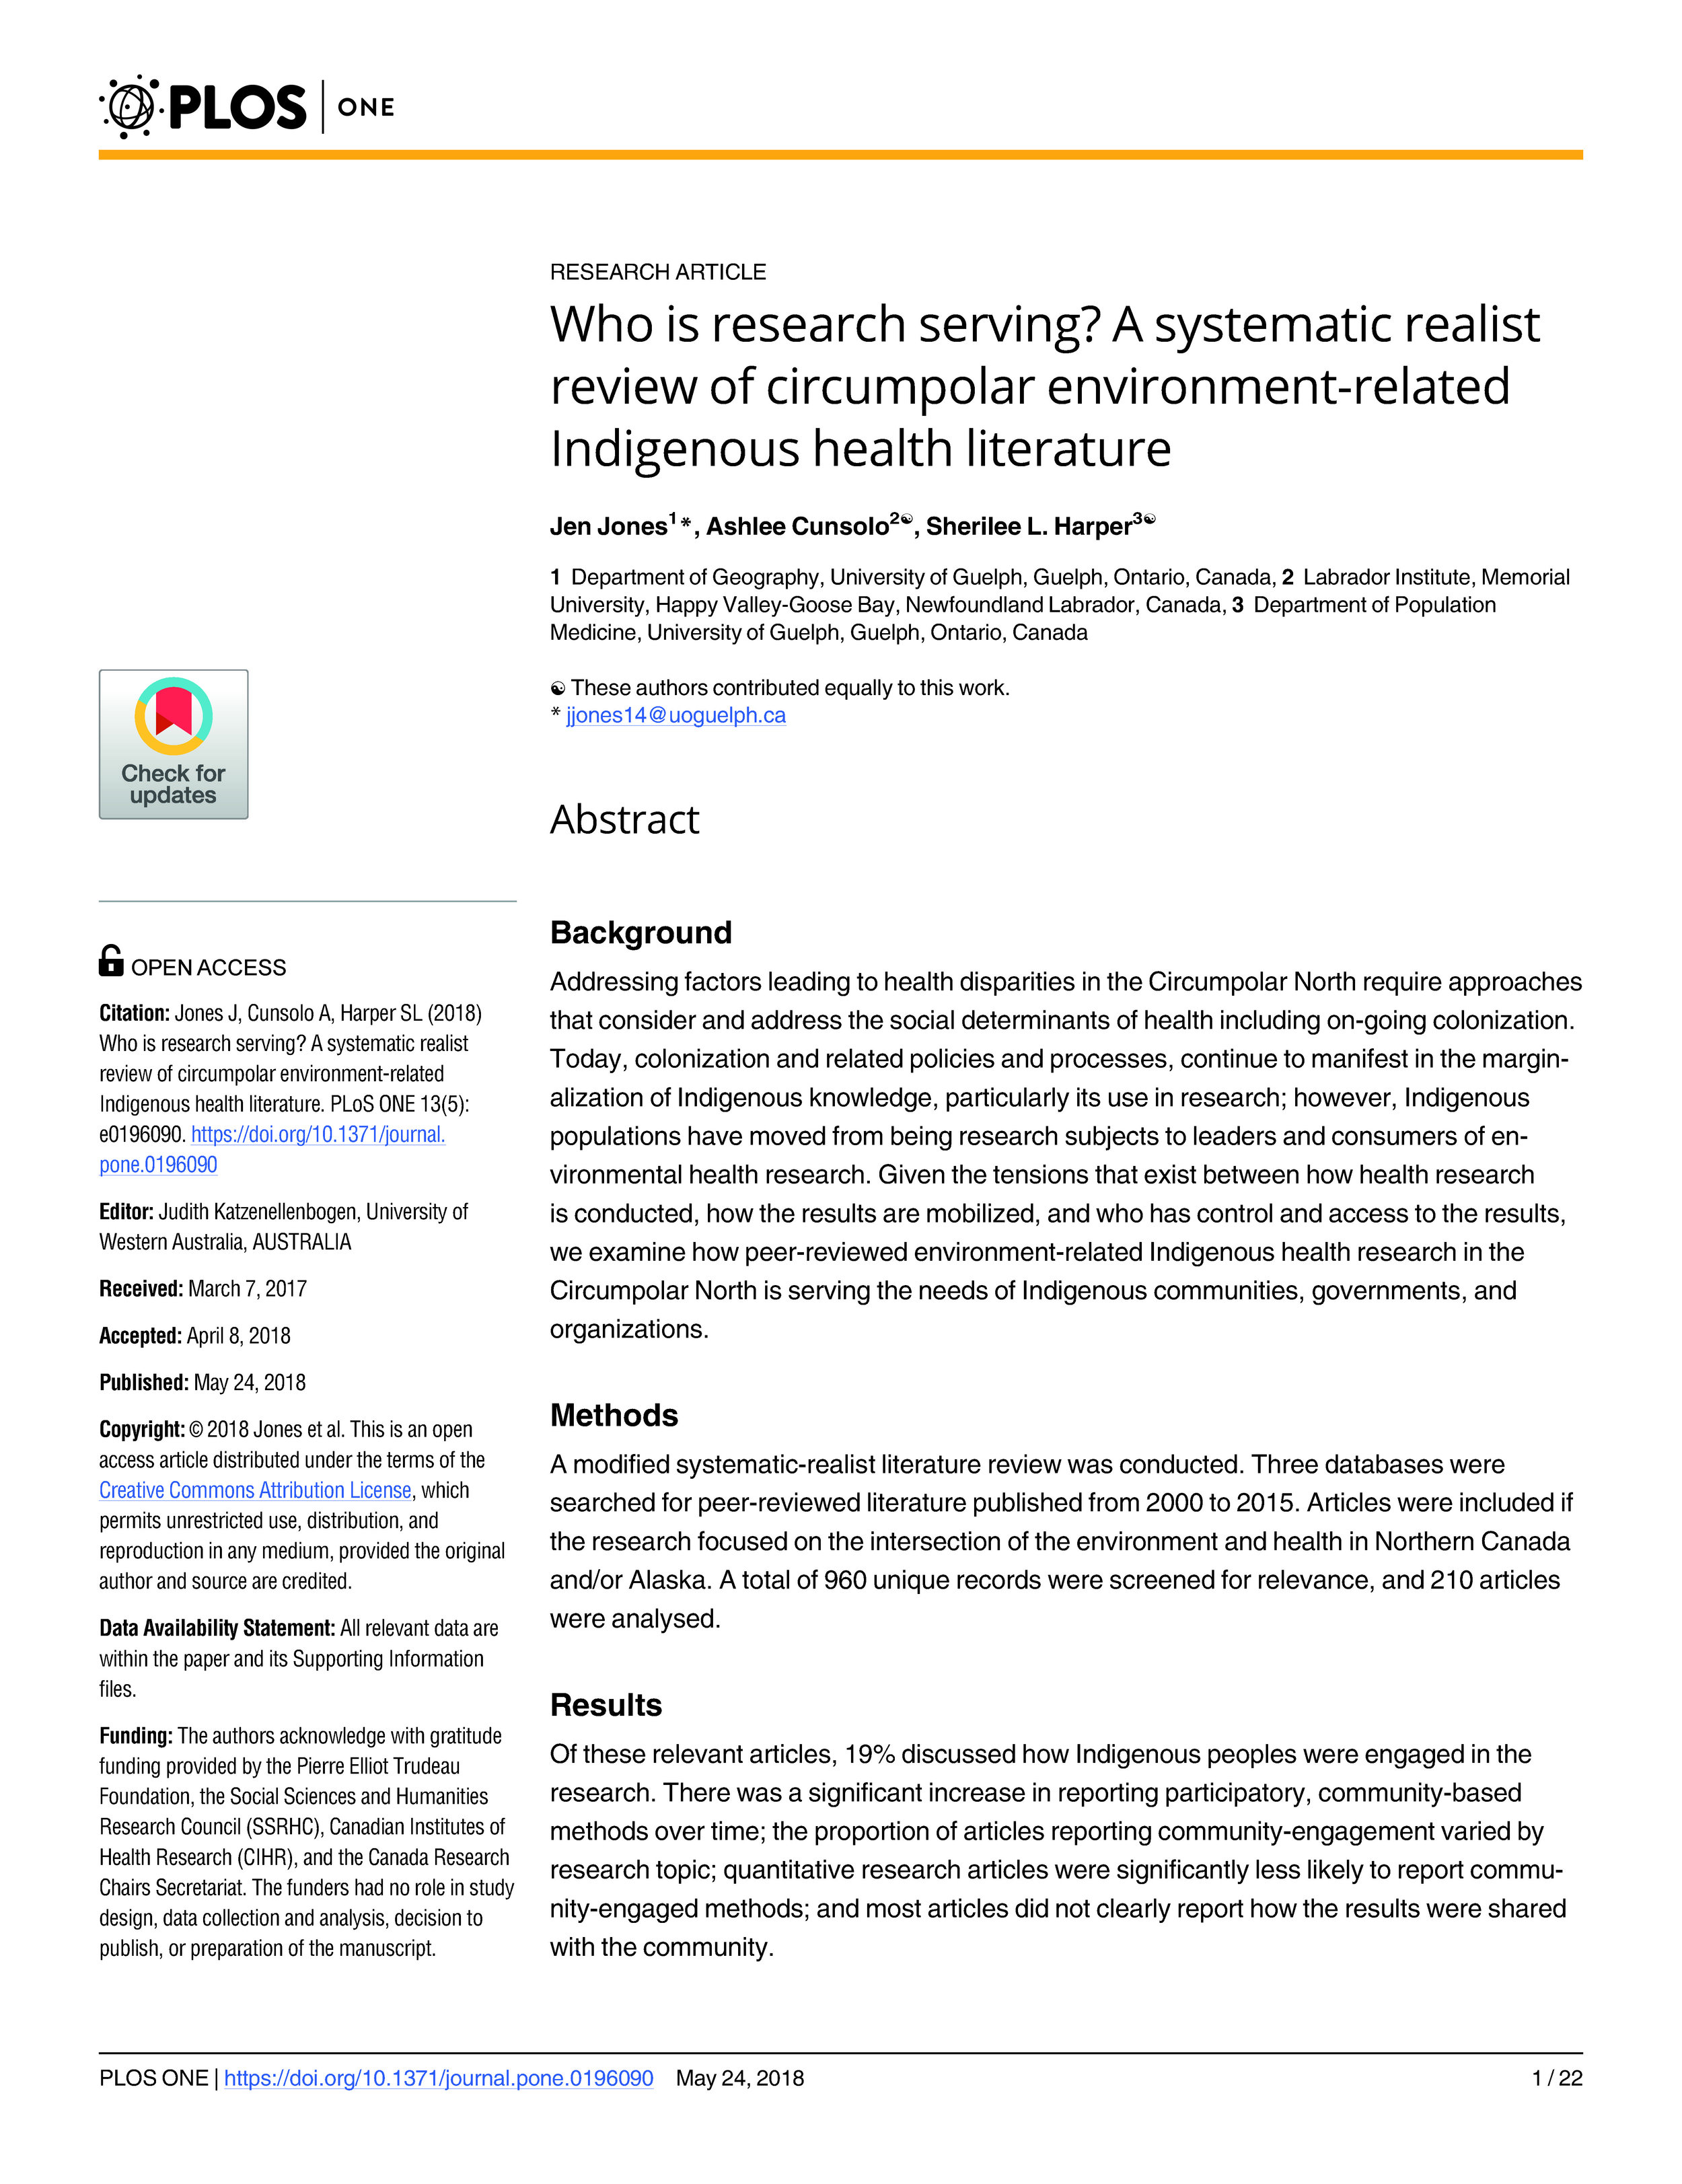 Free open-access article - Jones, Cunsolo, and Harper 2018